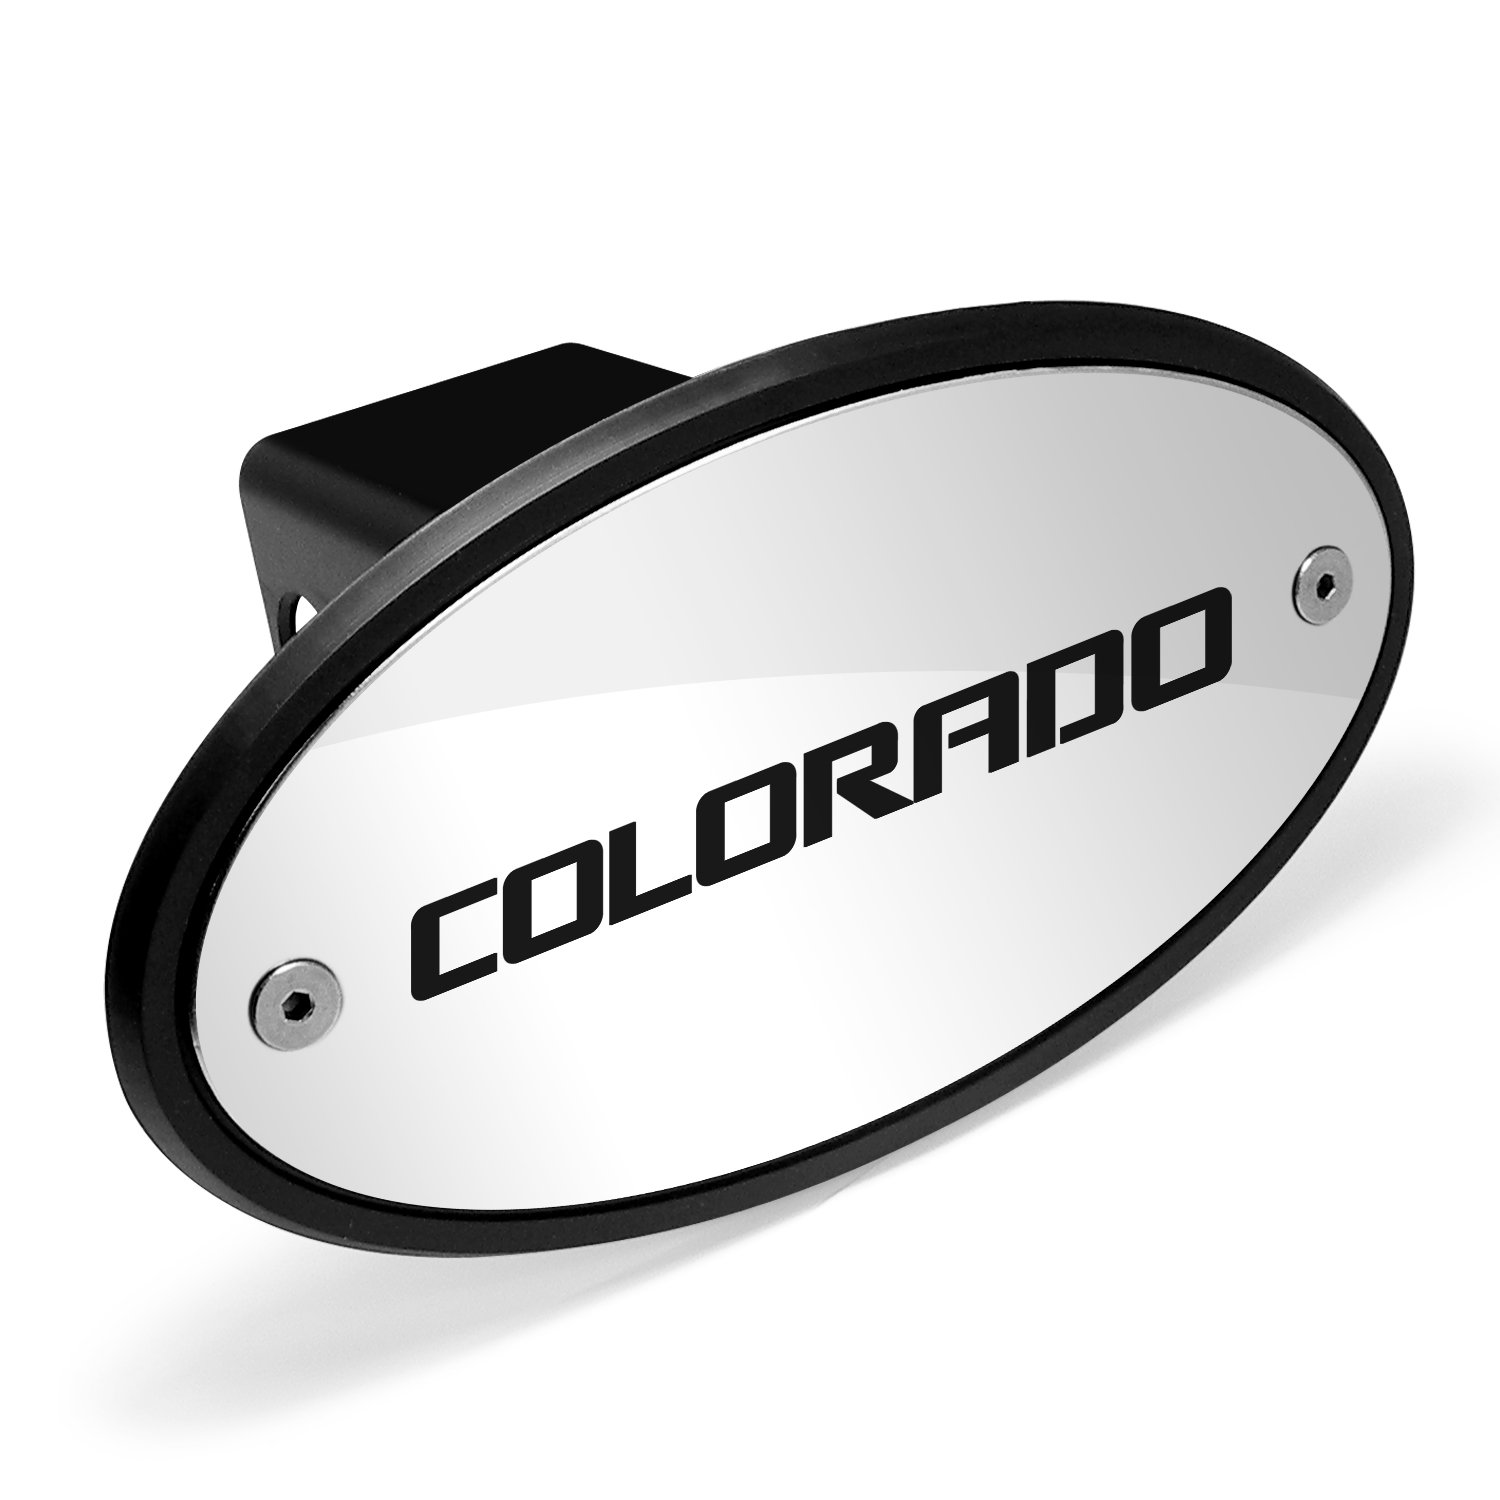 Chevrolet Logo Colorado Chrome Metal Plate 2 inch Tow Hitch Cover by Chevrolet CarBeyondStore